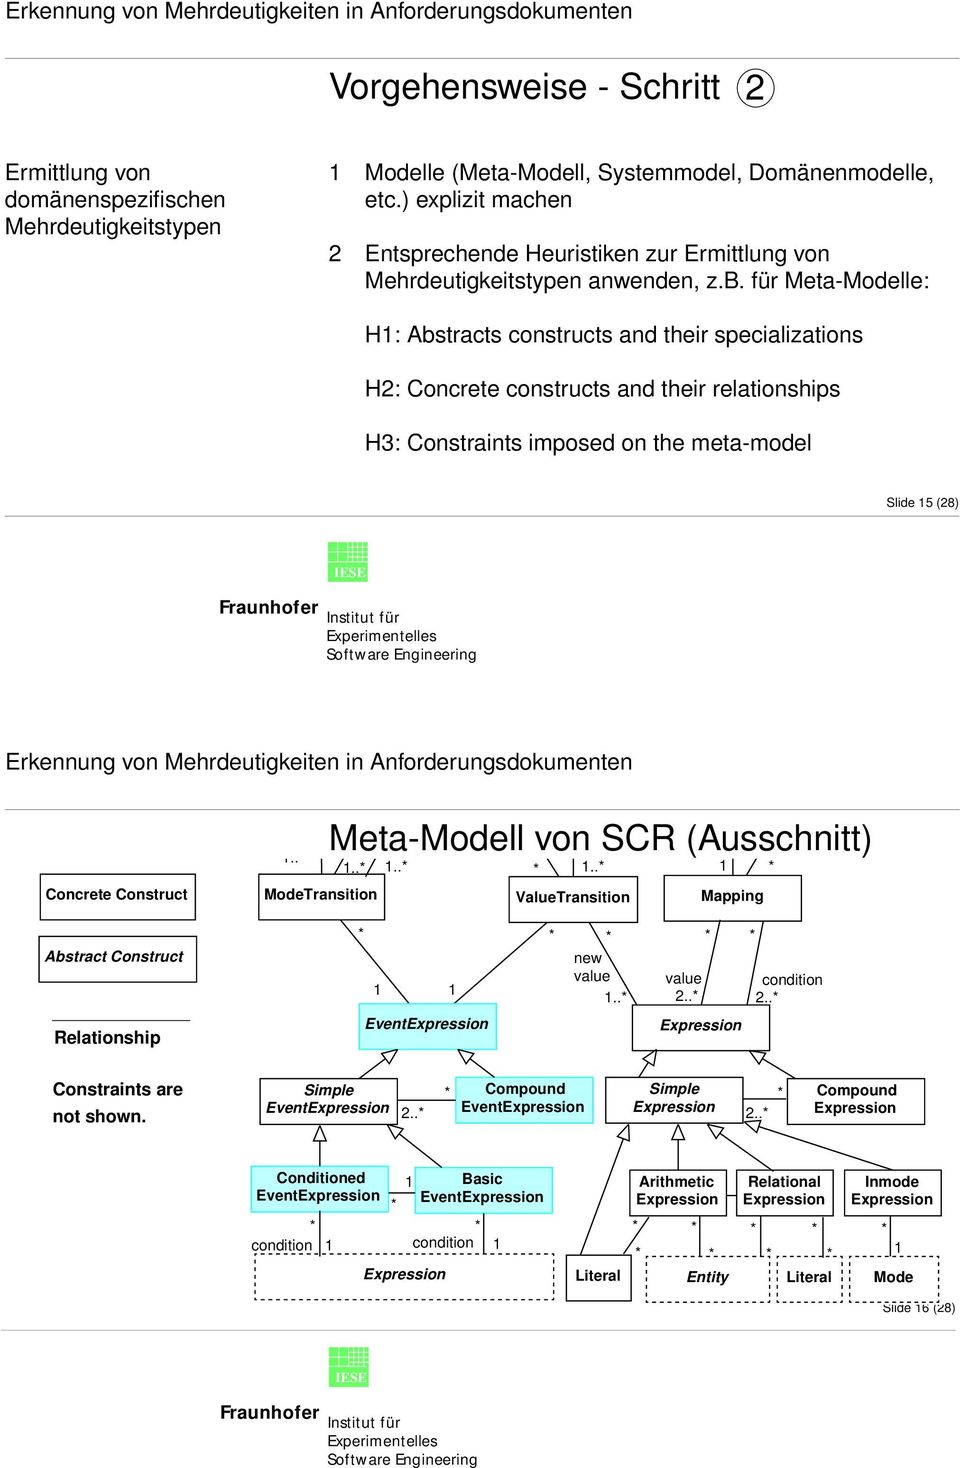 für Meta-Modelle: H1: Abstracts constructs and their specializations H2: Concrete constructs and their relationships H3: Constraints imposed on the meta-model Slide 15 (28) Concrete Construct